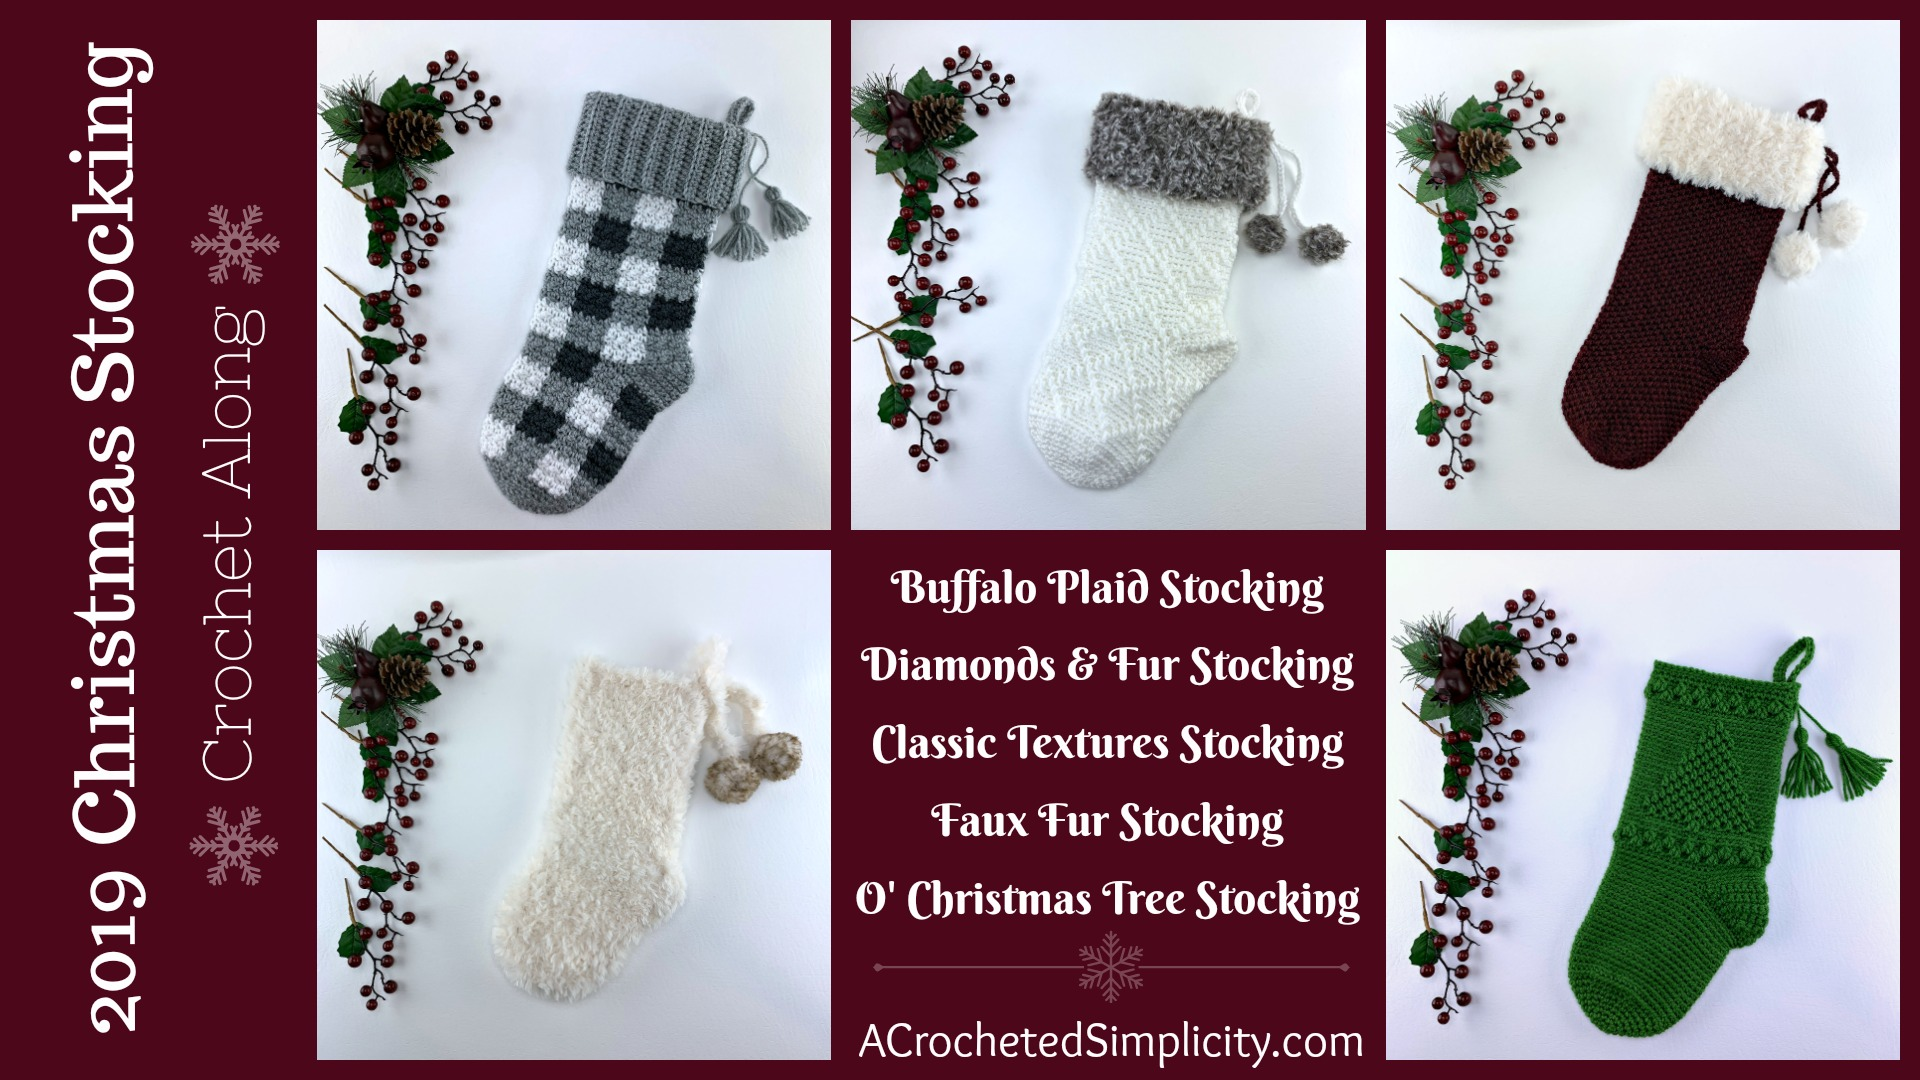 Join us for the 2019 Christmas Stocking Crochet Along! This is a free event for all with weekly prizes. We hope you'll join us!